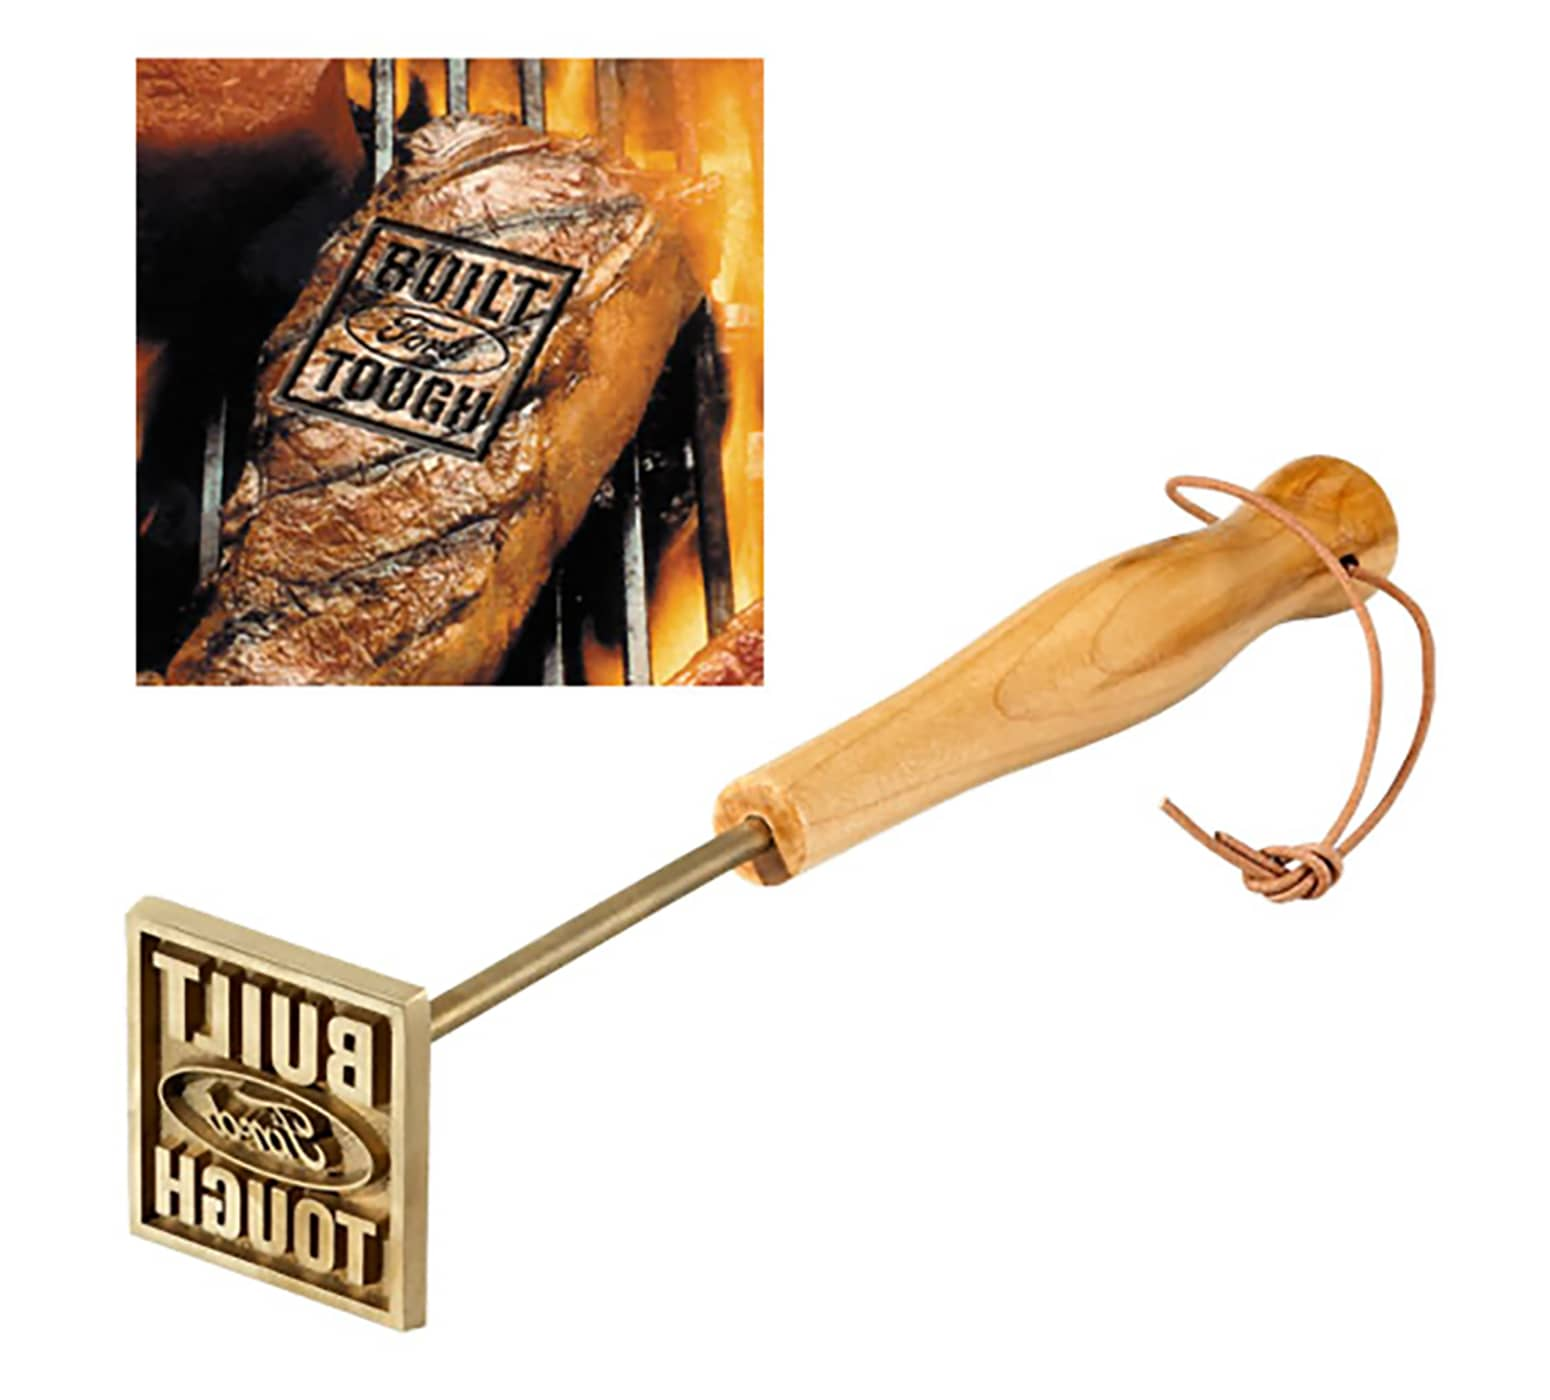 Built Ford Tough Branding Iron The Green Head